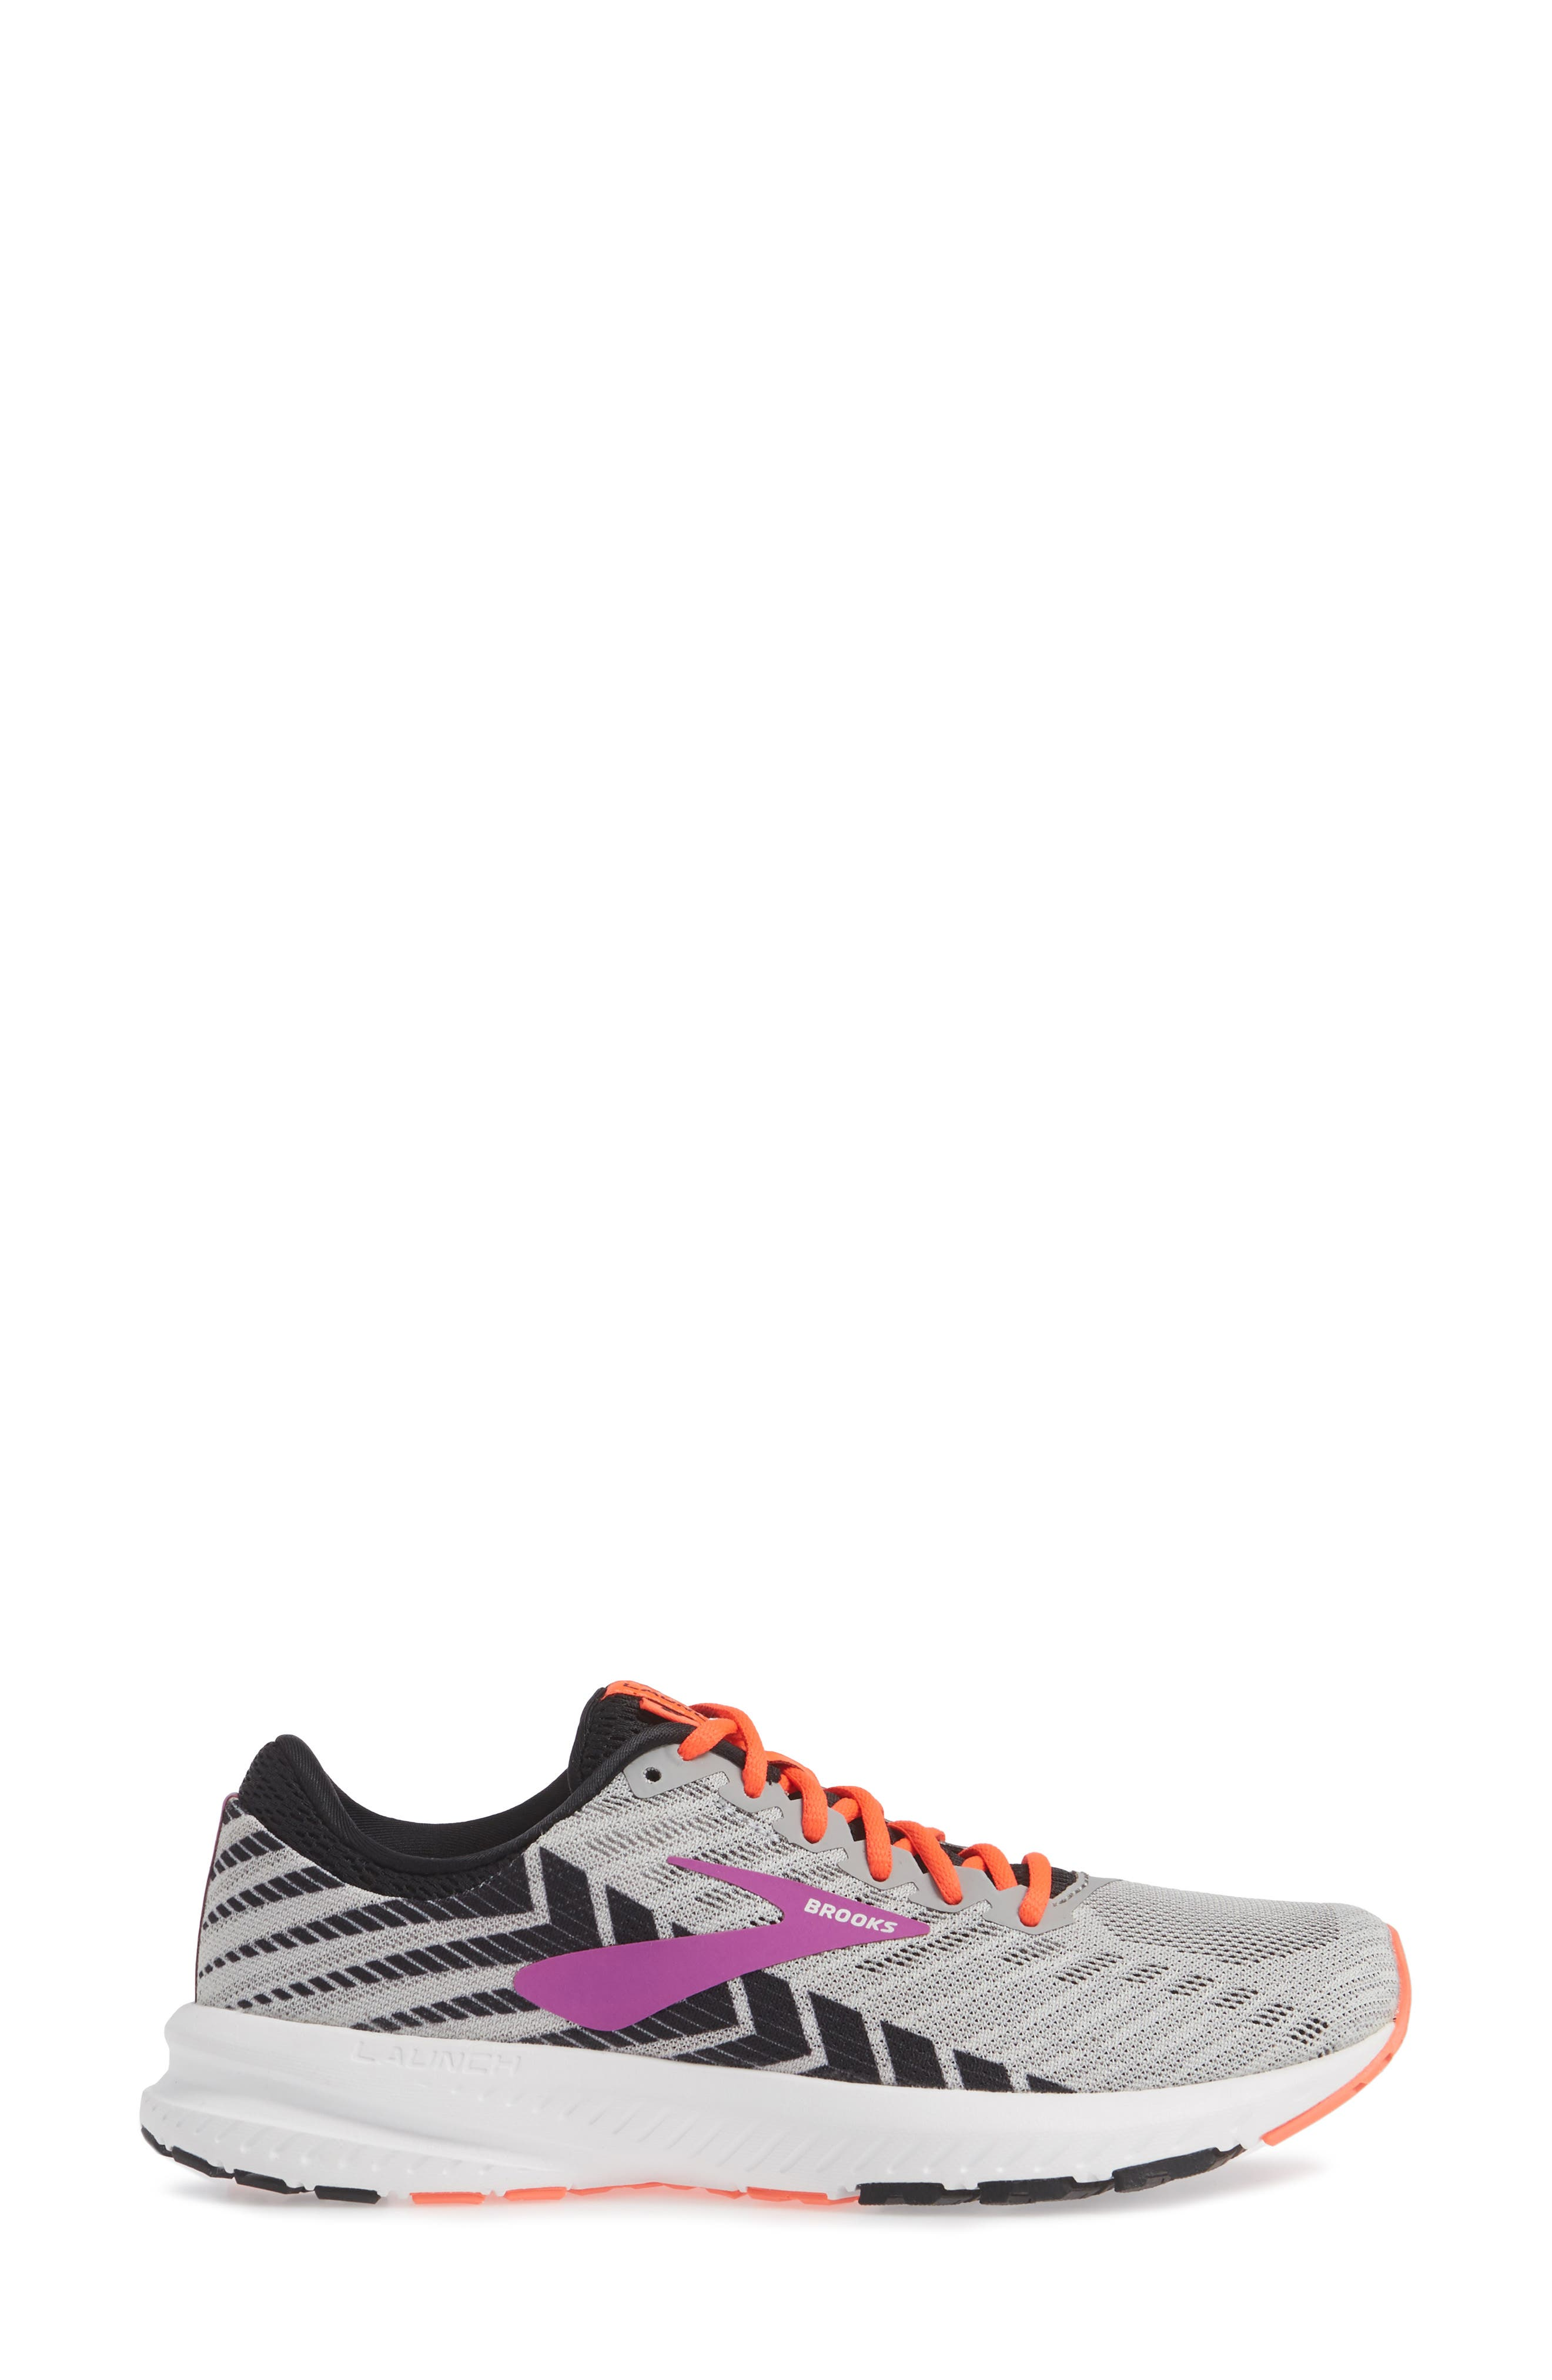 BROOKS, Launch 6 Running Shoe, Alternate thumbnail 3, color, GREY/ BLACK/ PURPLE